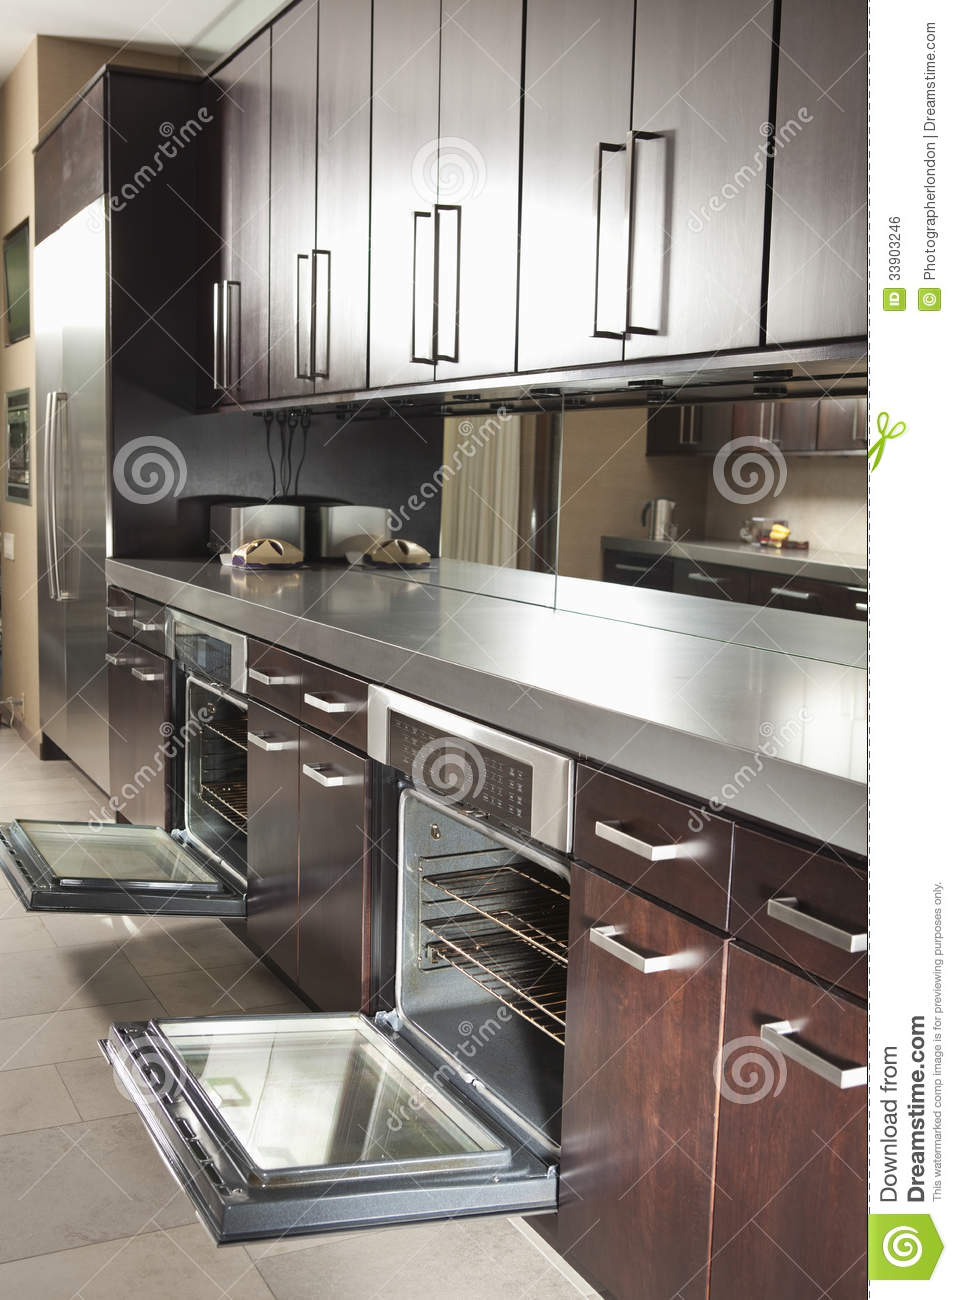 Commercial Kitchen With Open Oven And Cabinets Stock Photo